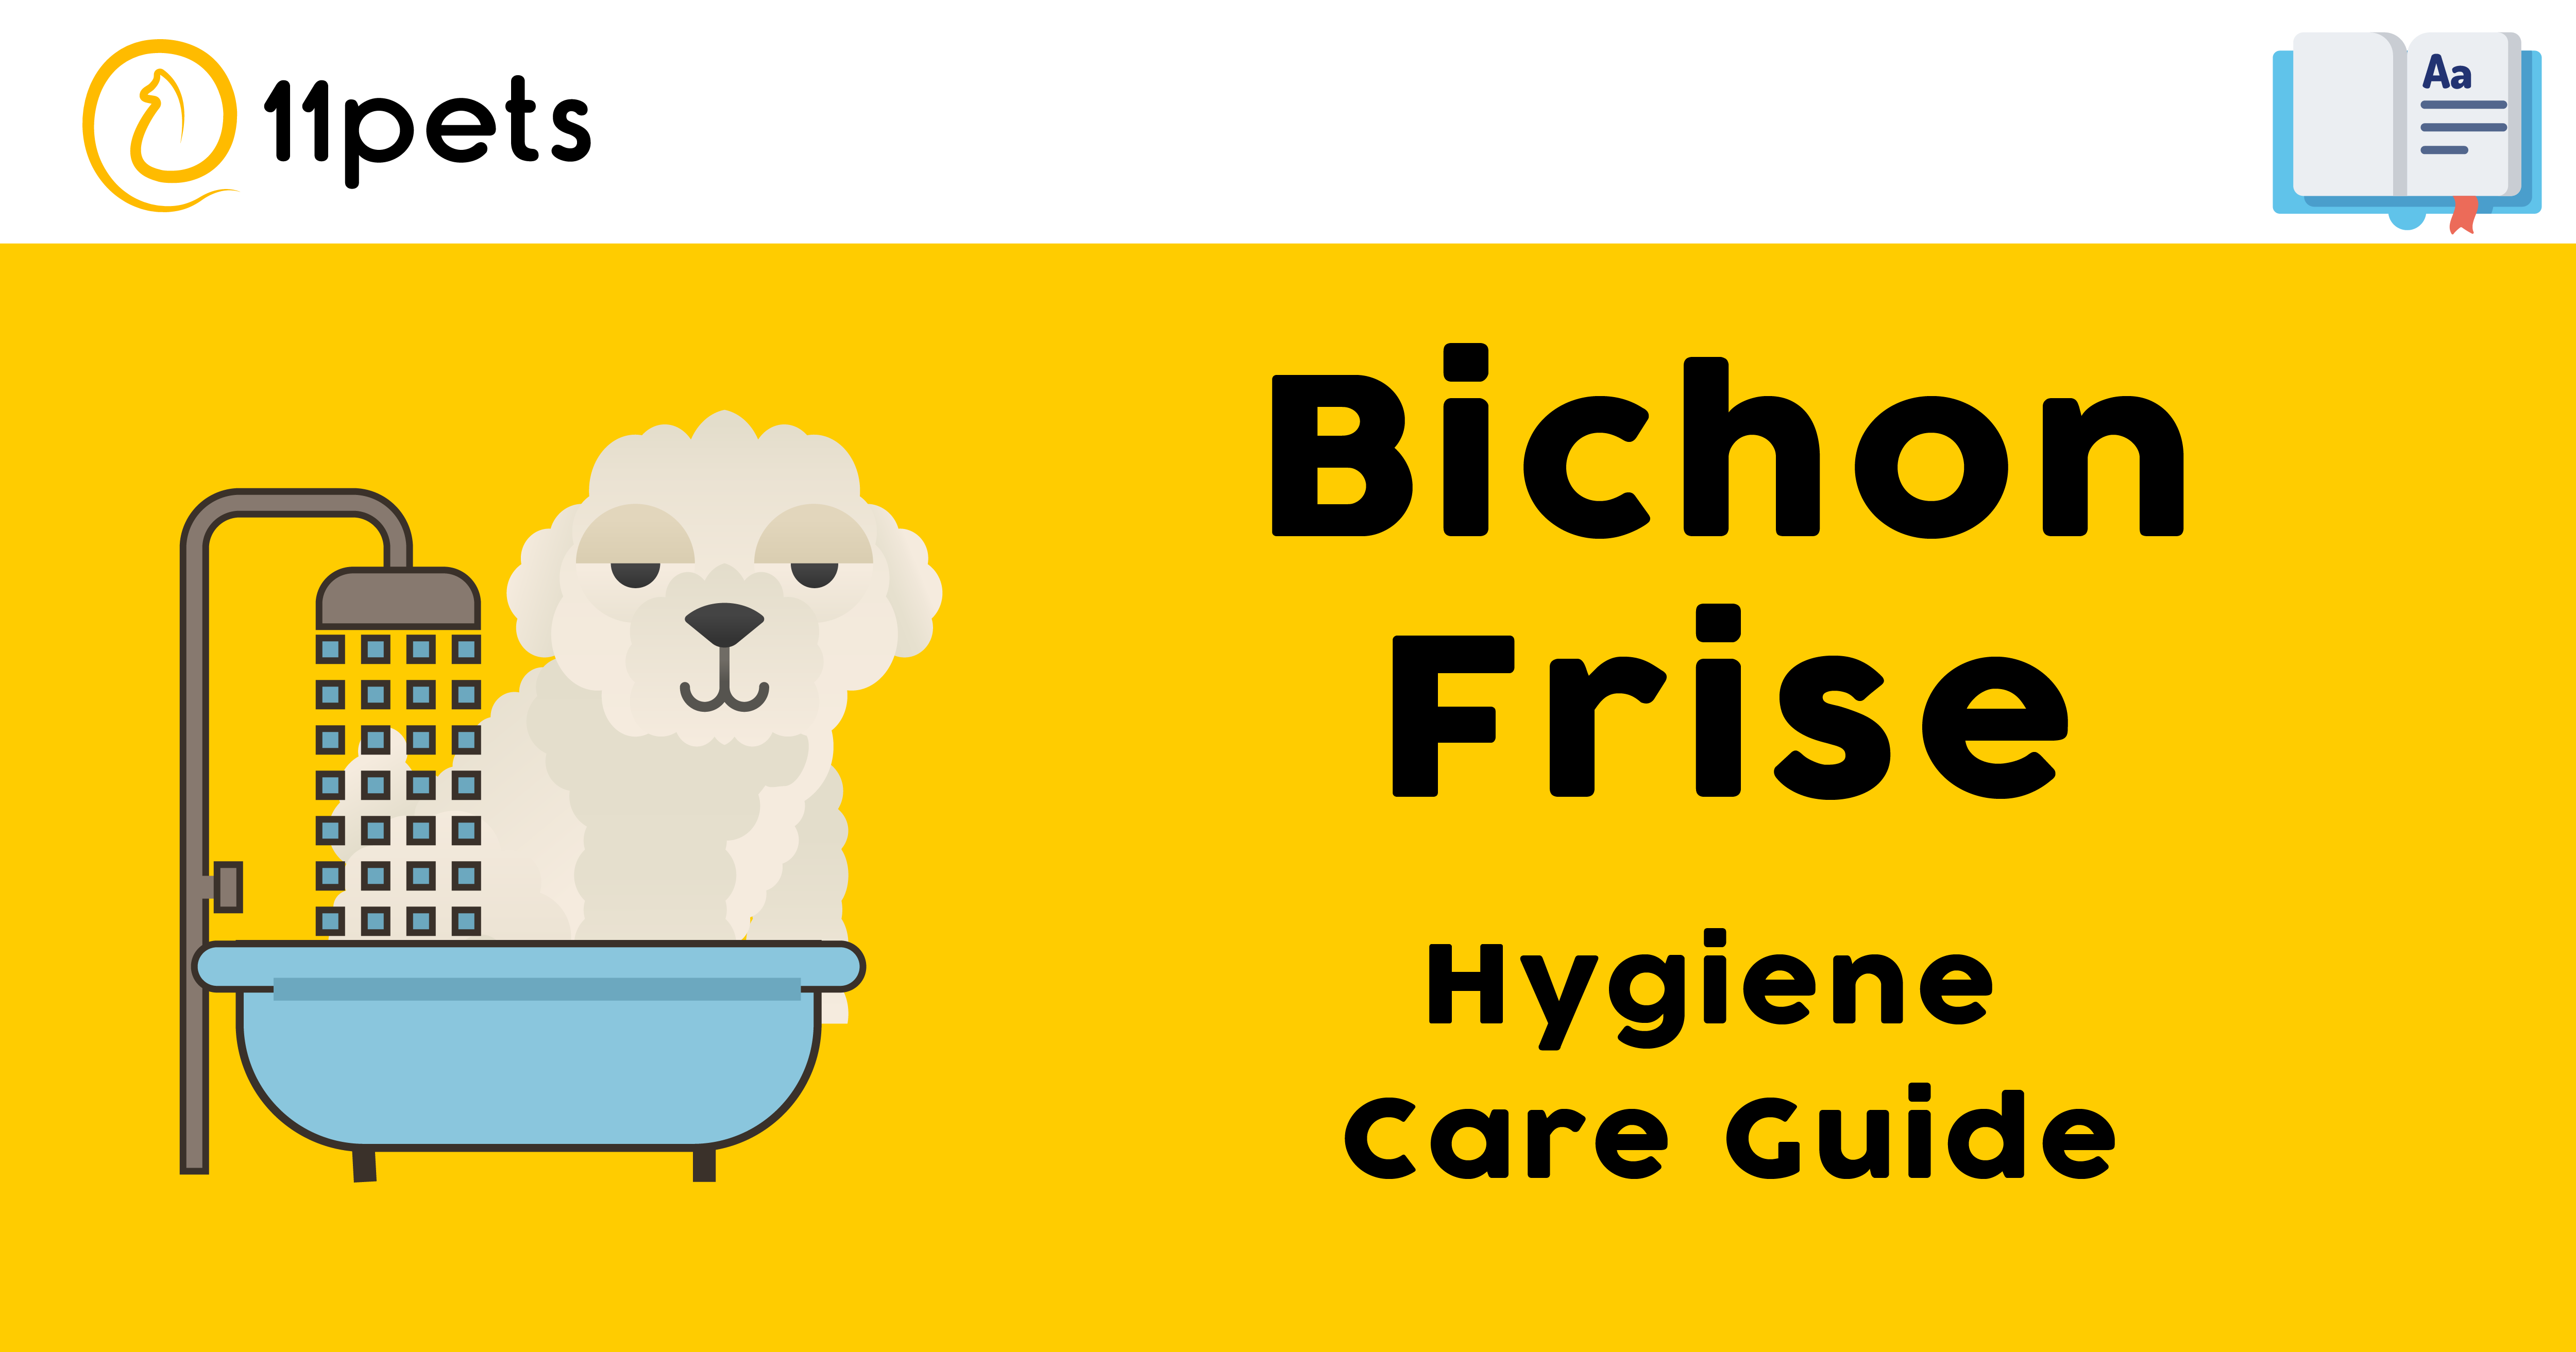 Hygiene Care Guide for Bichon Frise